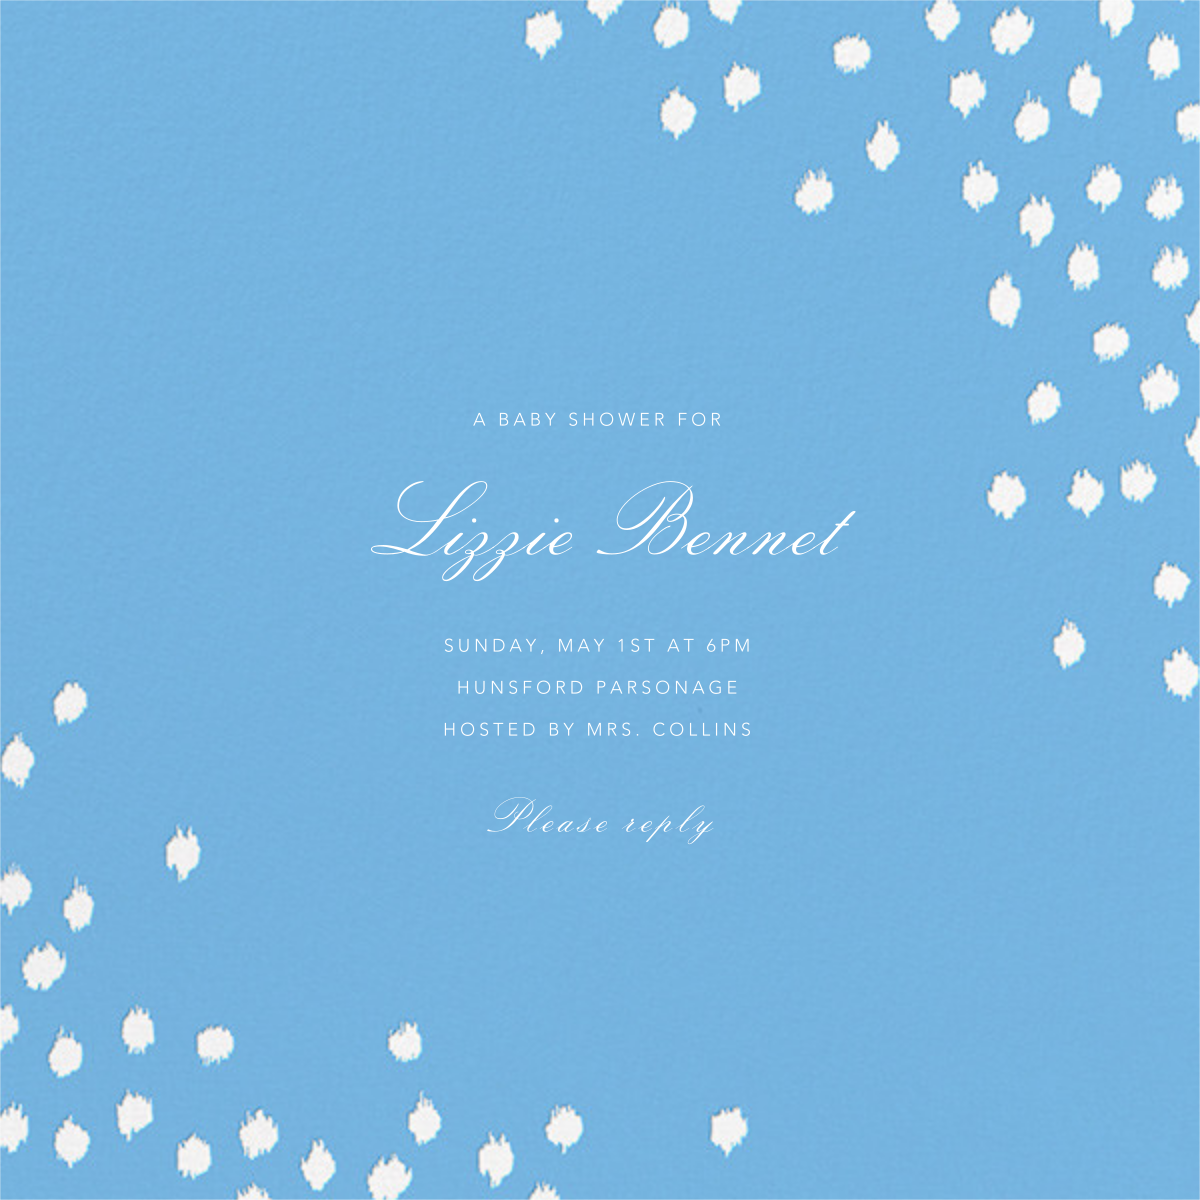 Ikat Dot (Square) - Light Blue - Oscar de la Renta - Baby shower